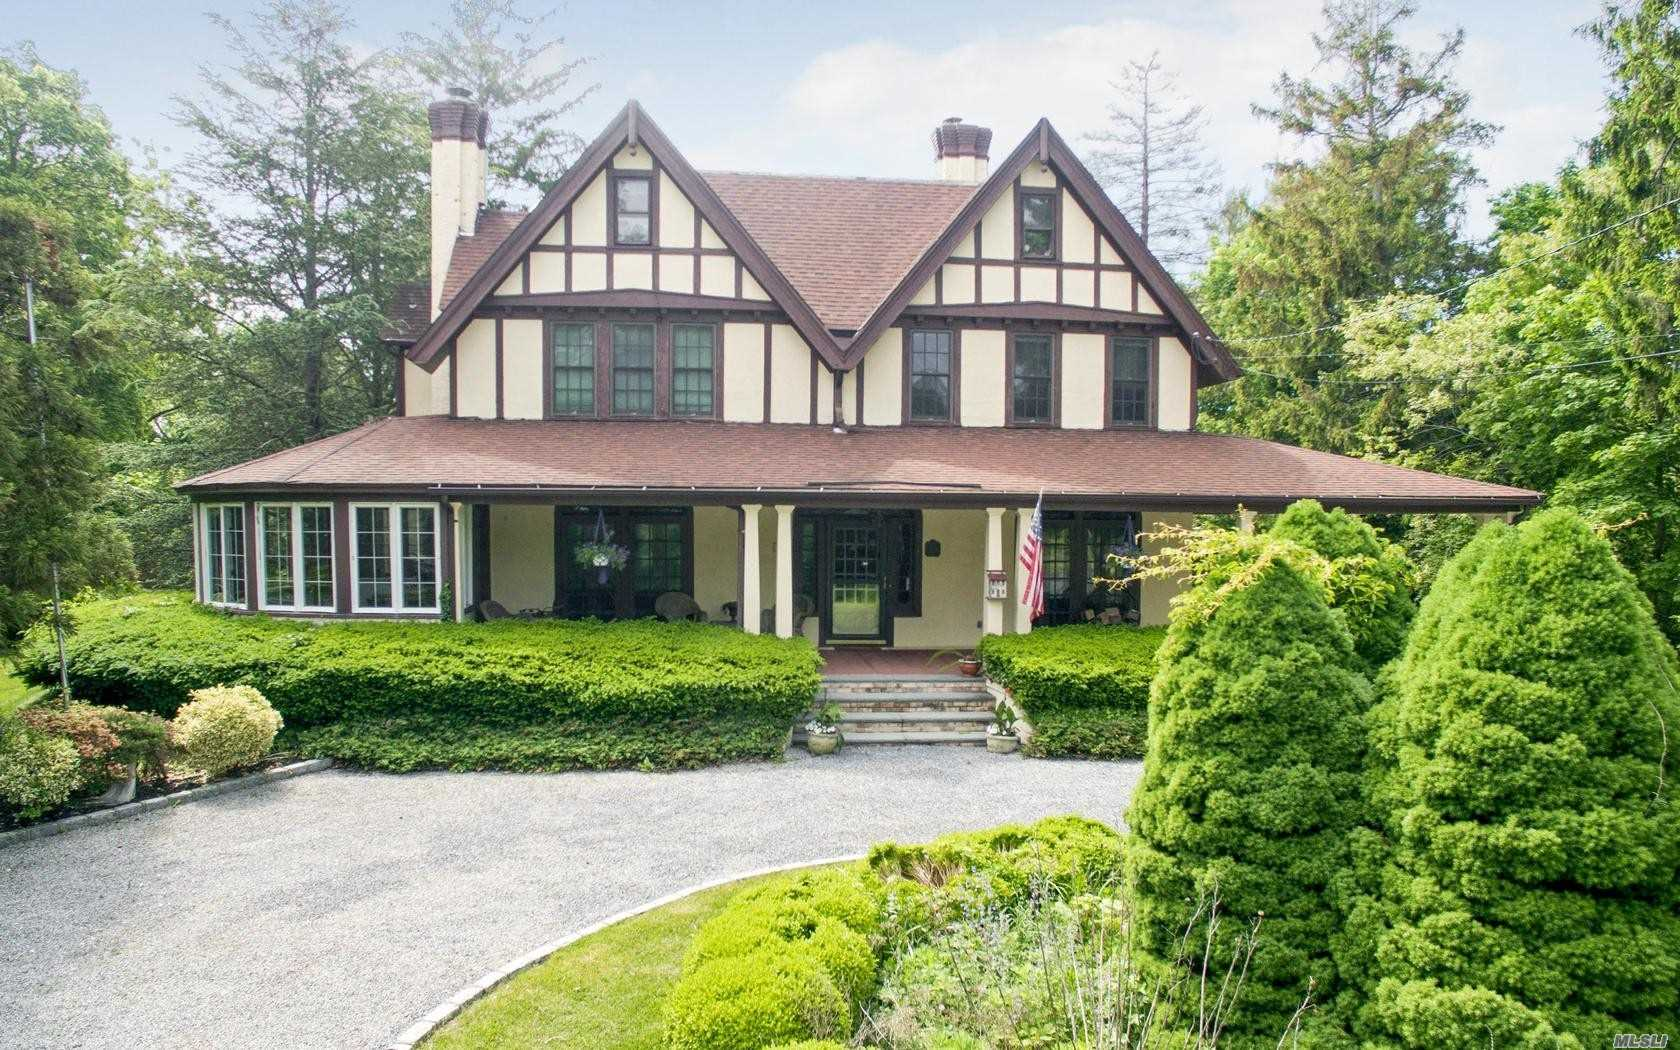 This Issac Green home built in 1902 exemplifies the essense of South Shore Living. Set on 1.87 acres this English tudor welcomes a bygone era. Coffered ceilings, French doors that open to the front porch, Foyer anchored by a wood paneled library, wainscoting, and a grand mahogany spindled staircase. The dining room is proportioned for opulent entertaining and orginal Tiffany glass windows reflect colors of every season. Landscape of gardens, fishponds,  perfect for grand scale living.